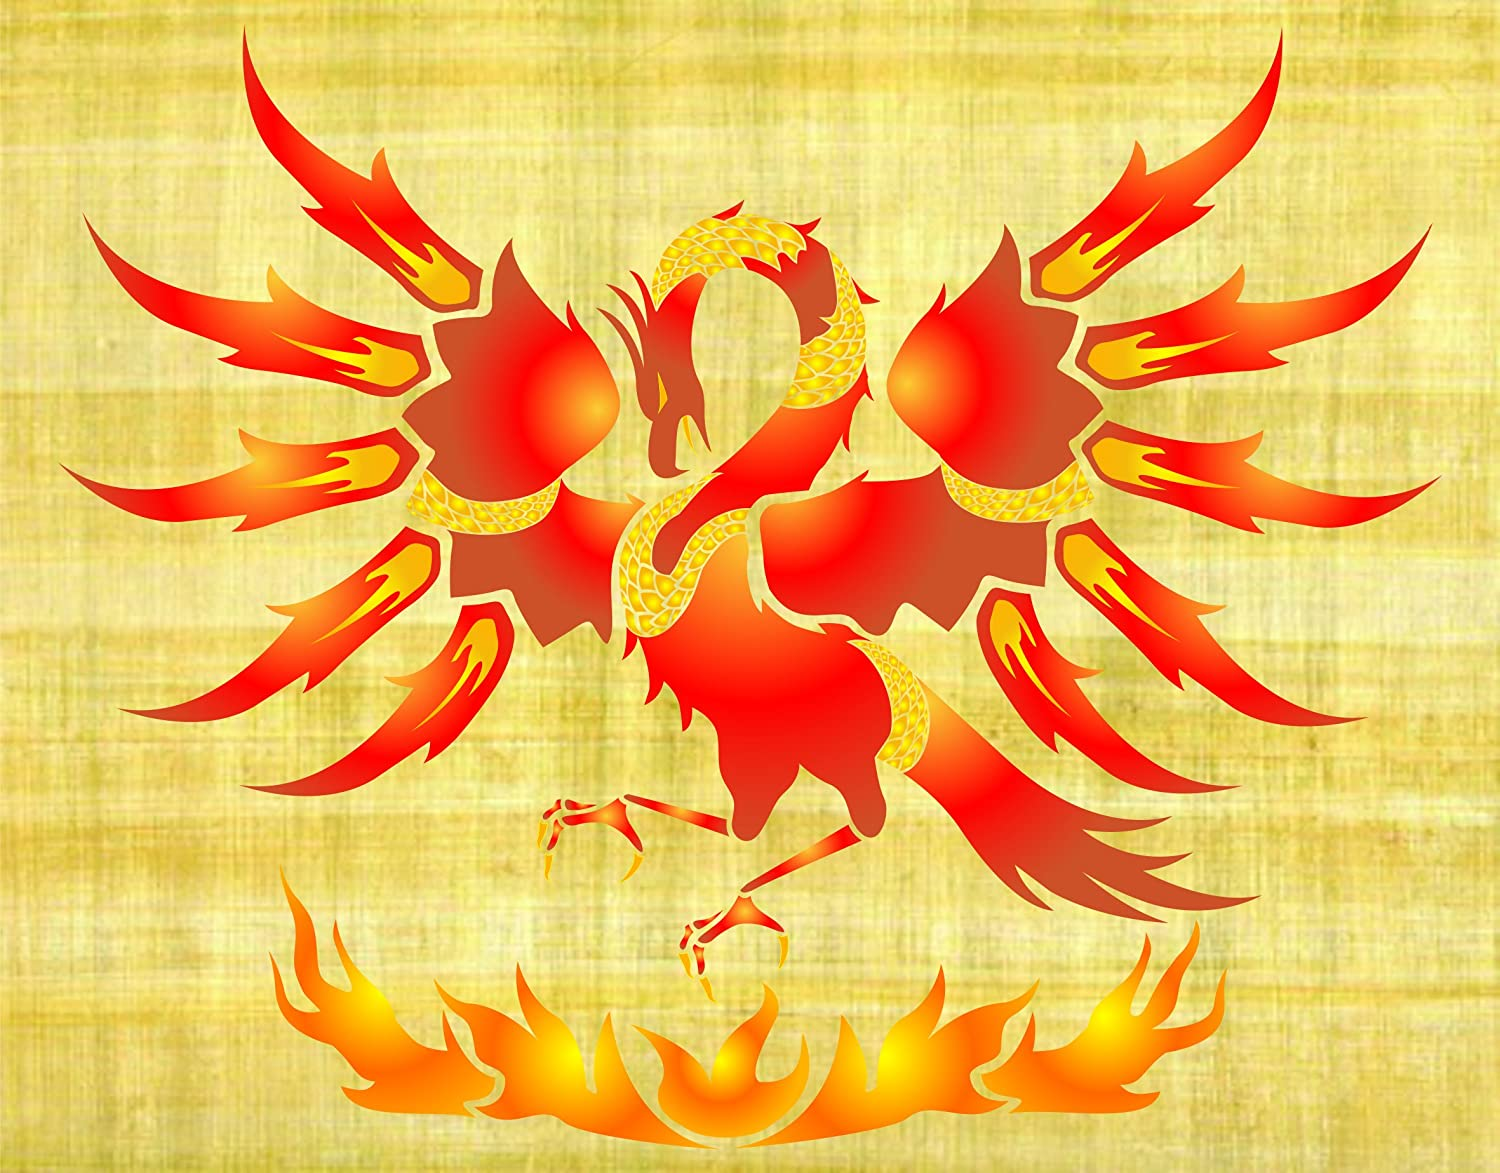 Amazon phoenix stencil size 85w x 7h reusable wall amazon phoenix stencil size 85w x 7h reusable wall stencils for painting best quality dragon wall art decor ideas use on walls floors amipublicfo Gallery